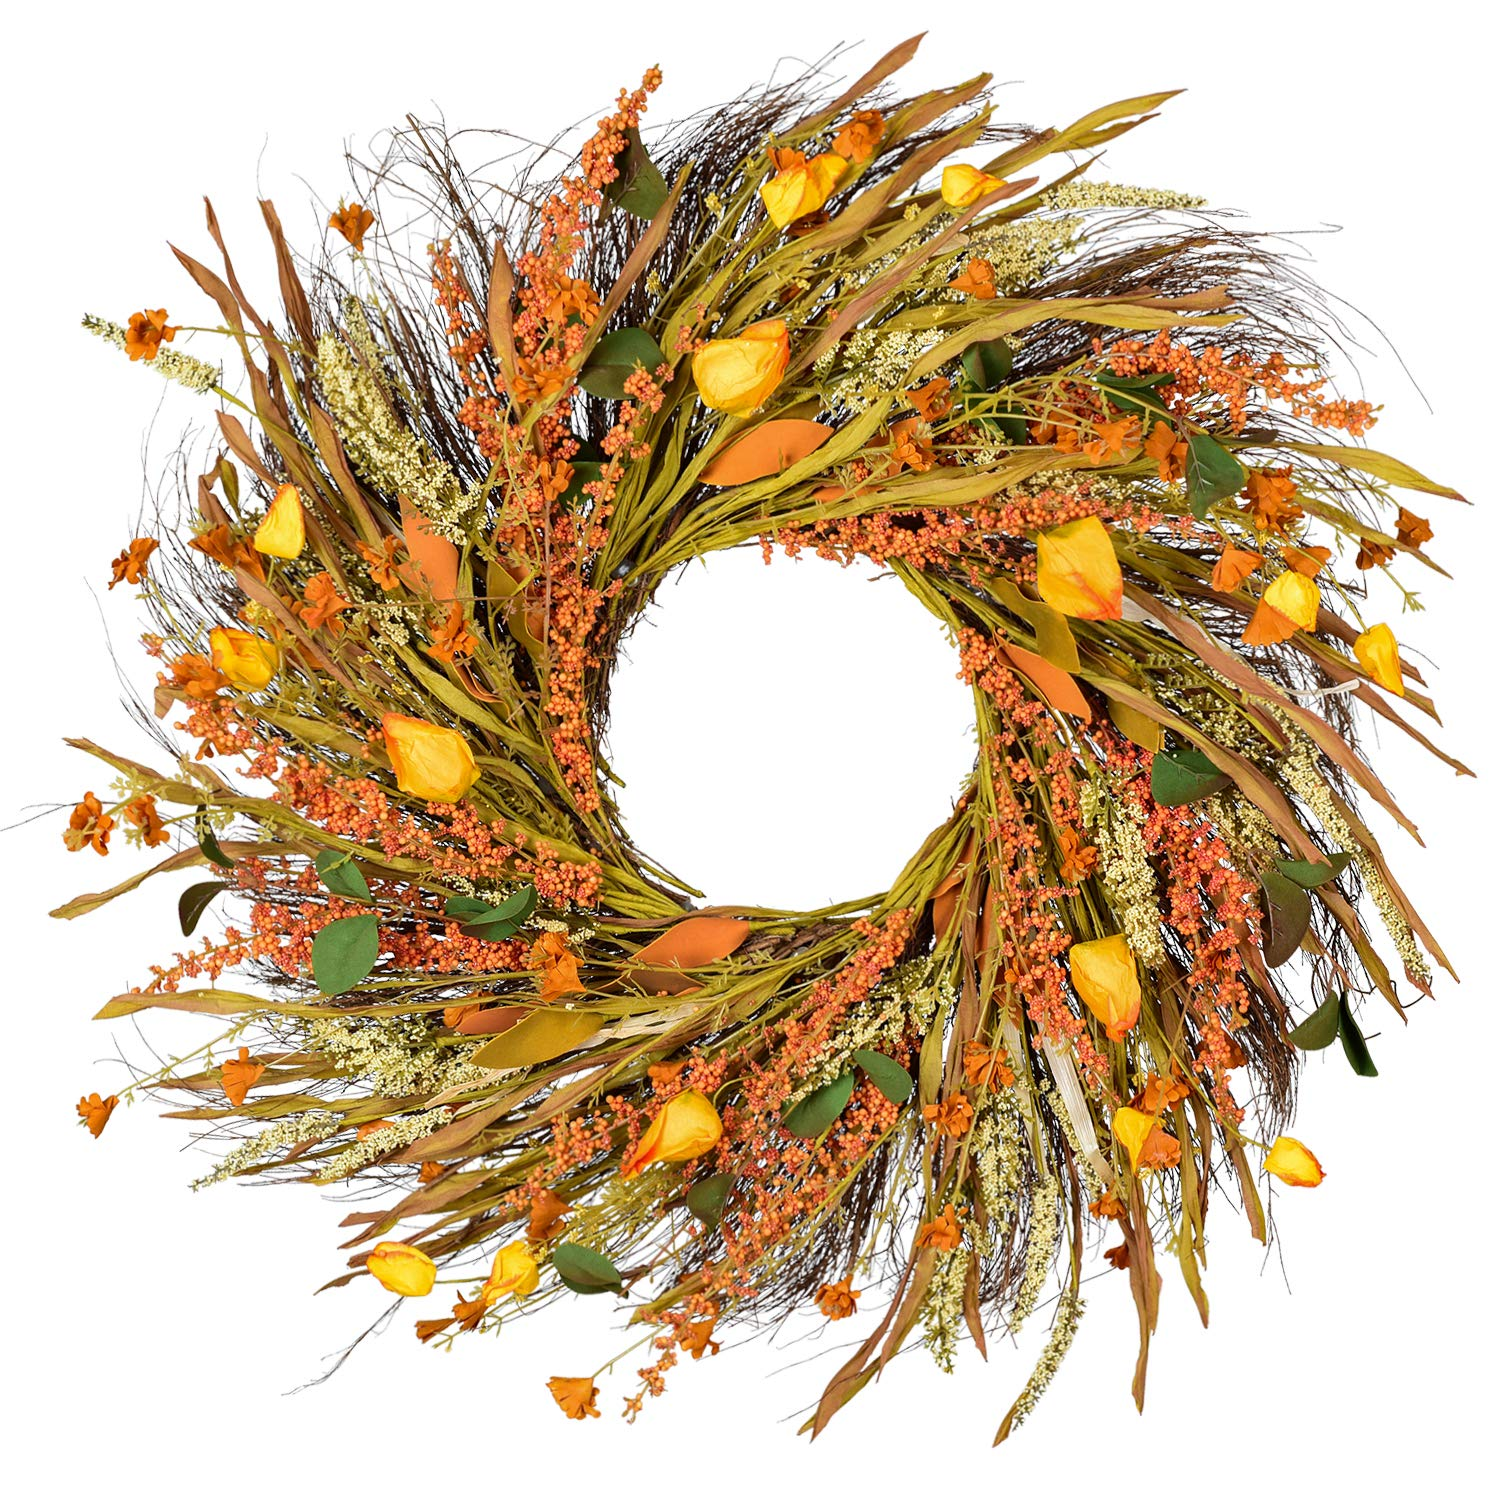 22 inch Fall Wreath Front Door Wreath Grain Wreath Harvest Gold Wheat Ears Circle Garland autumn wreath for Front Door Wedding Wall Home Thanksgiving Decor by Woooow